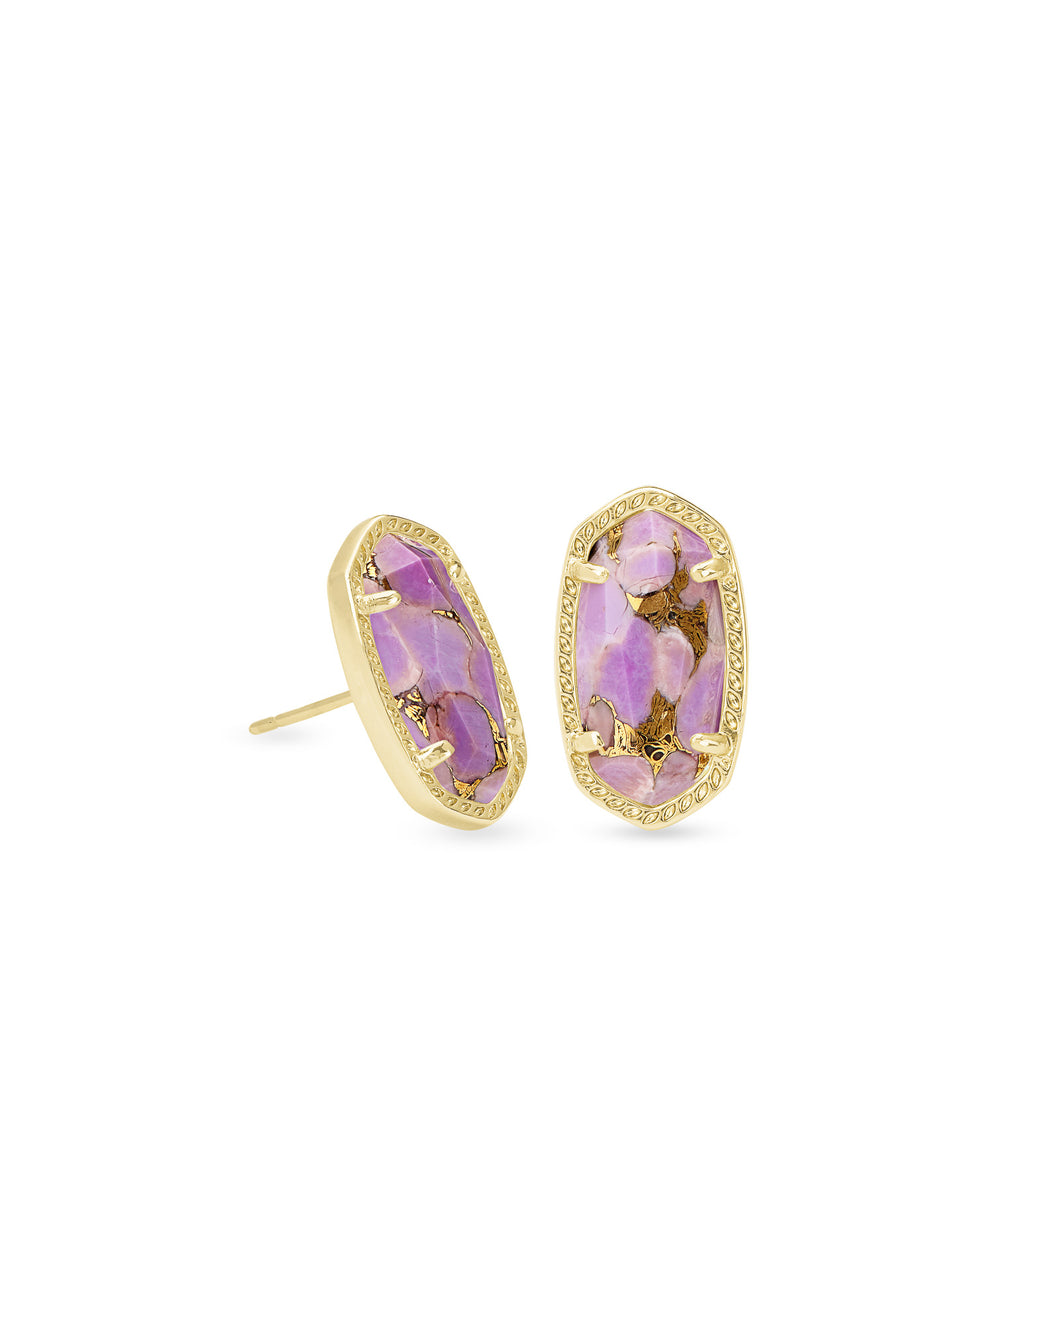 Kendra Scott Ellie Gold Stud Earrings in Lilac